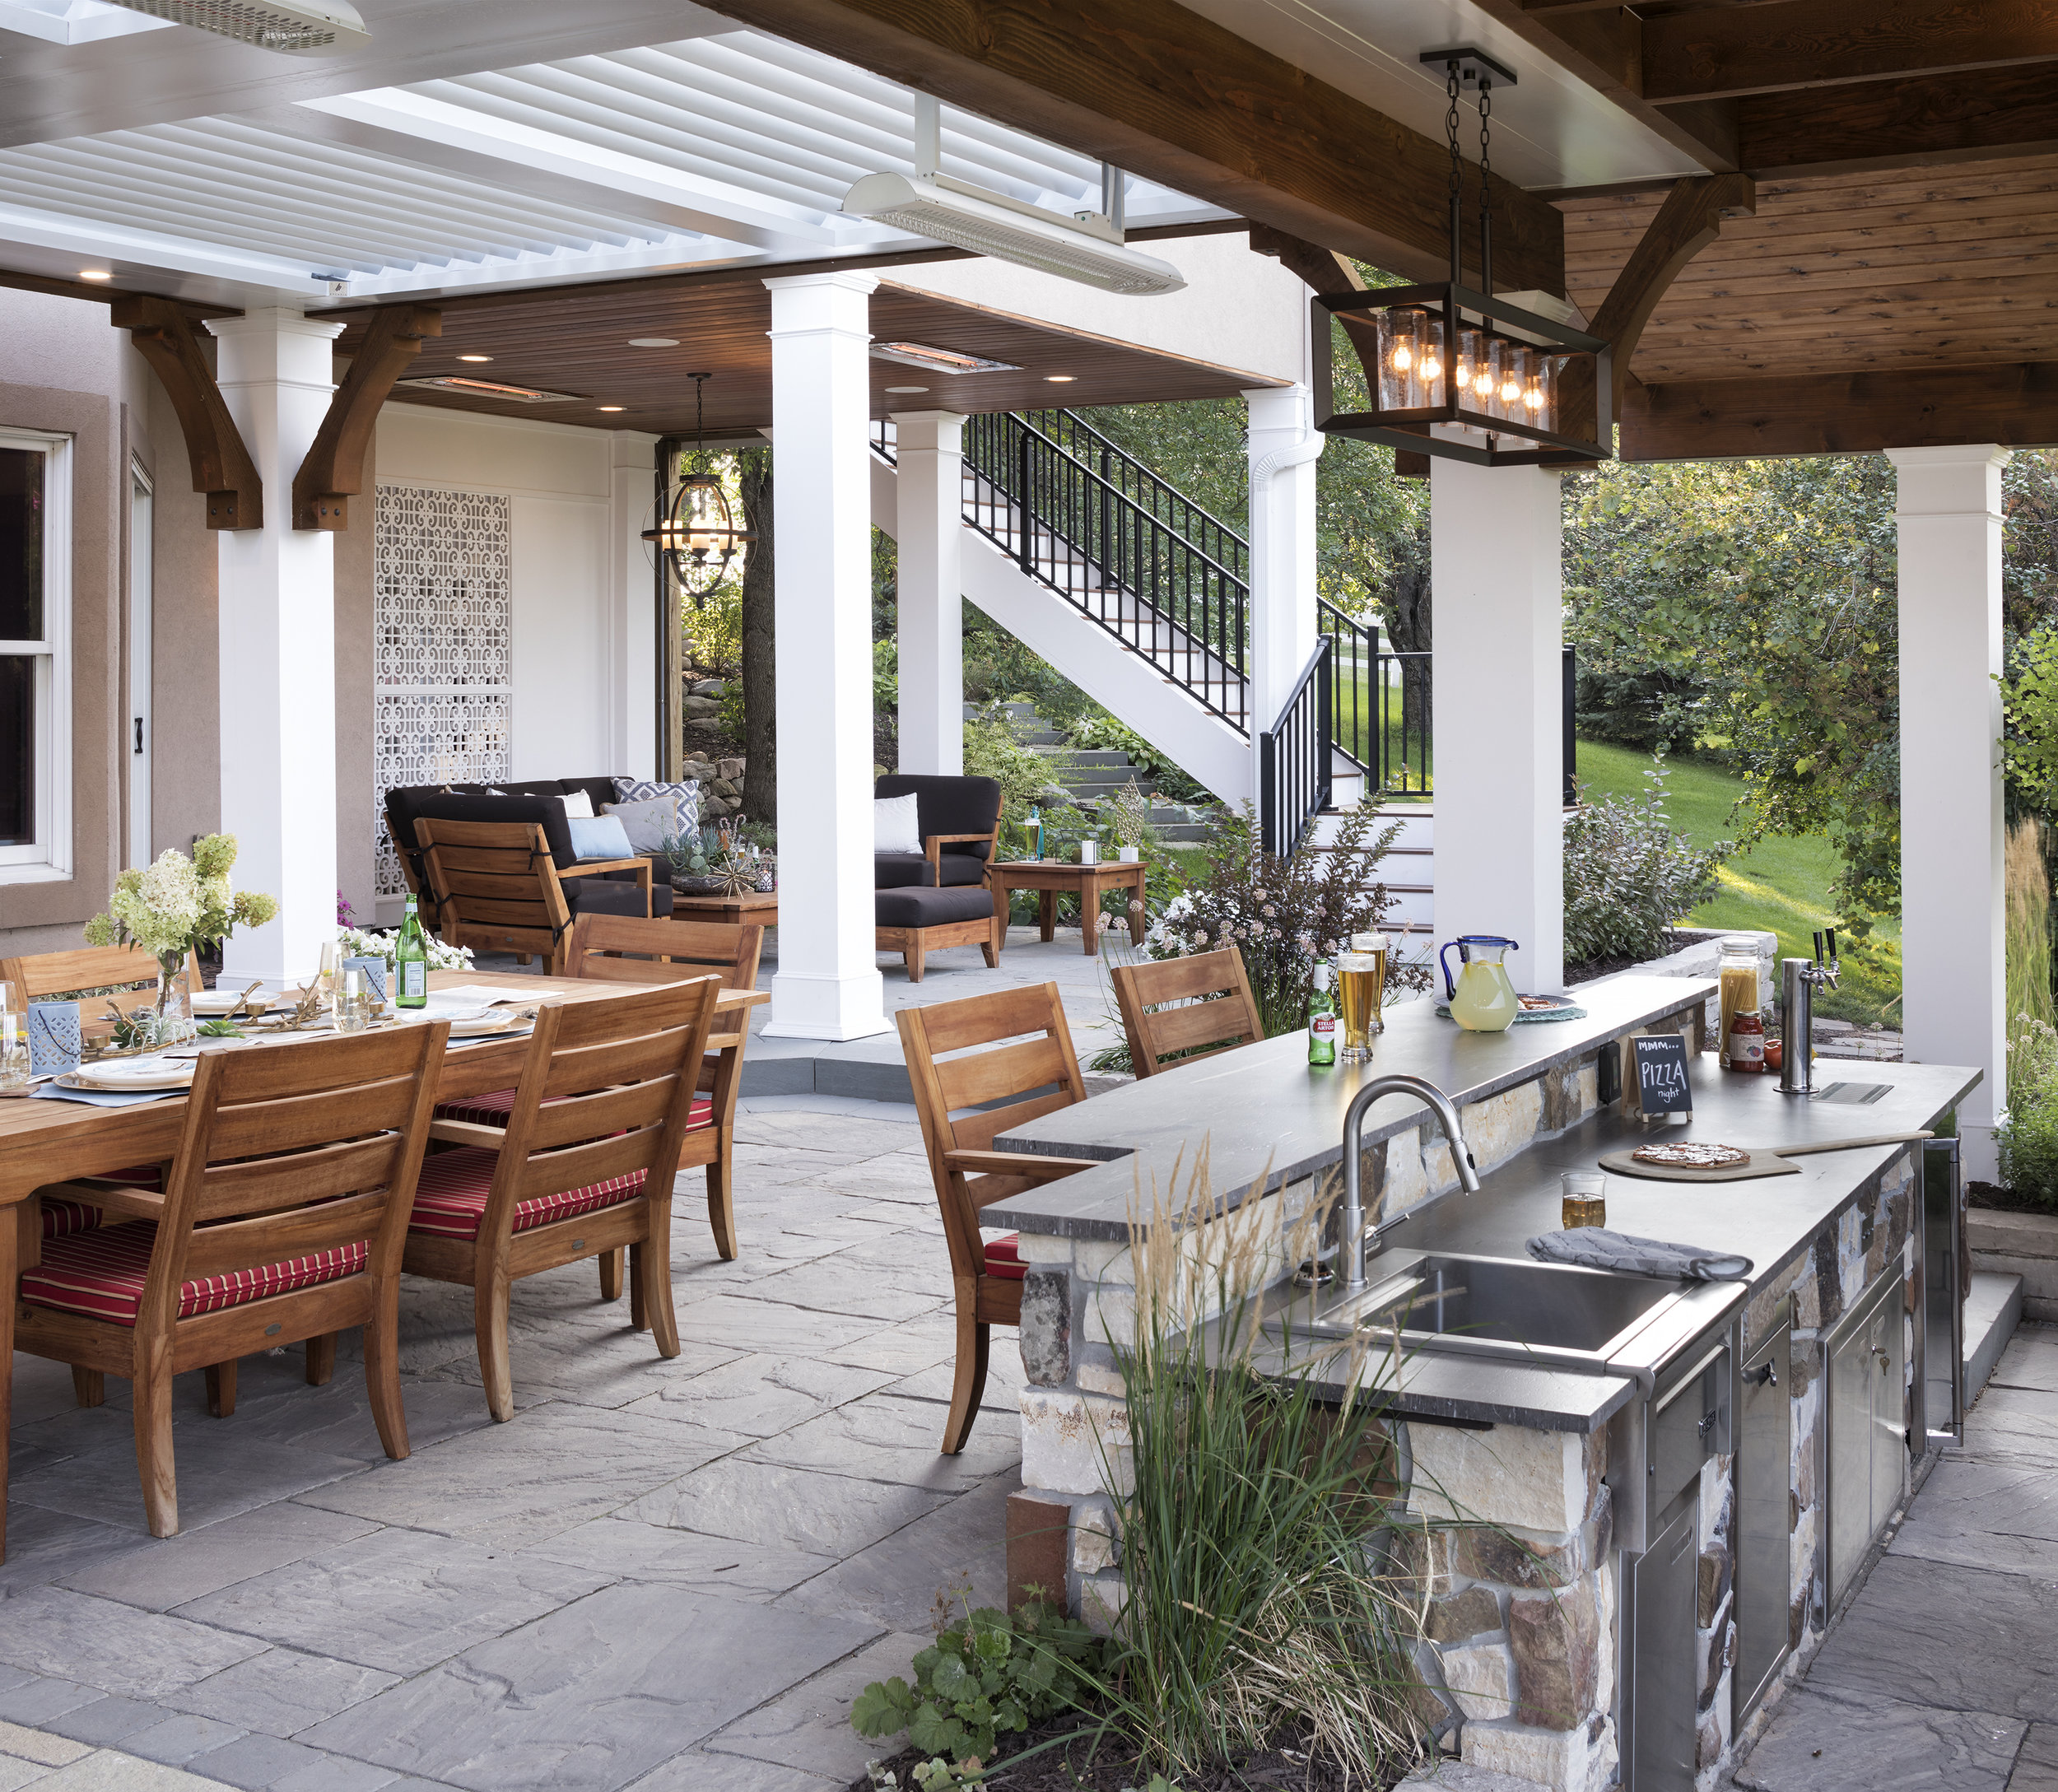 Mom's Design Build - Backyard Outdoor Kitchen Dining Table Grill